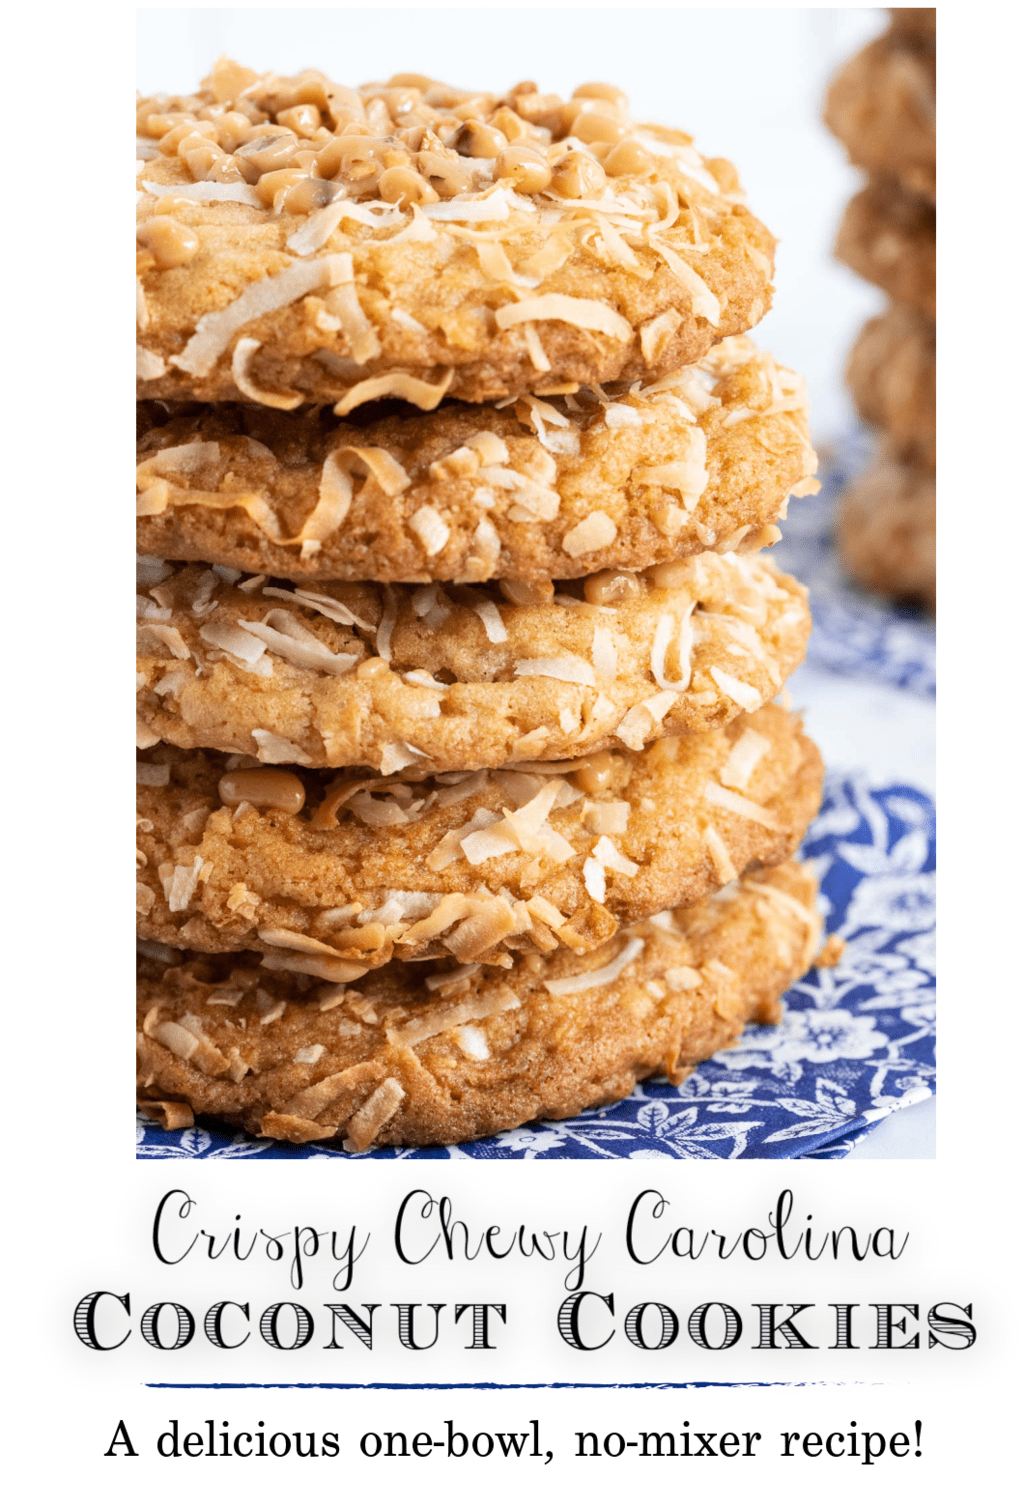 Crispy, Chewy Carolina Coconut Cookies